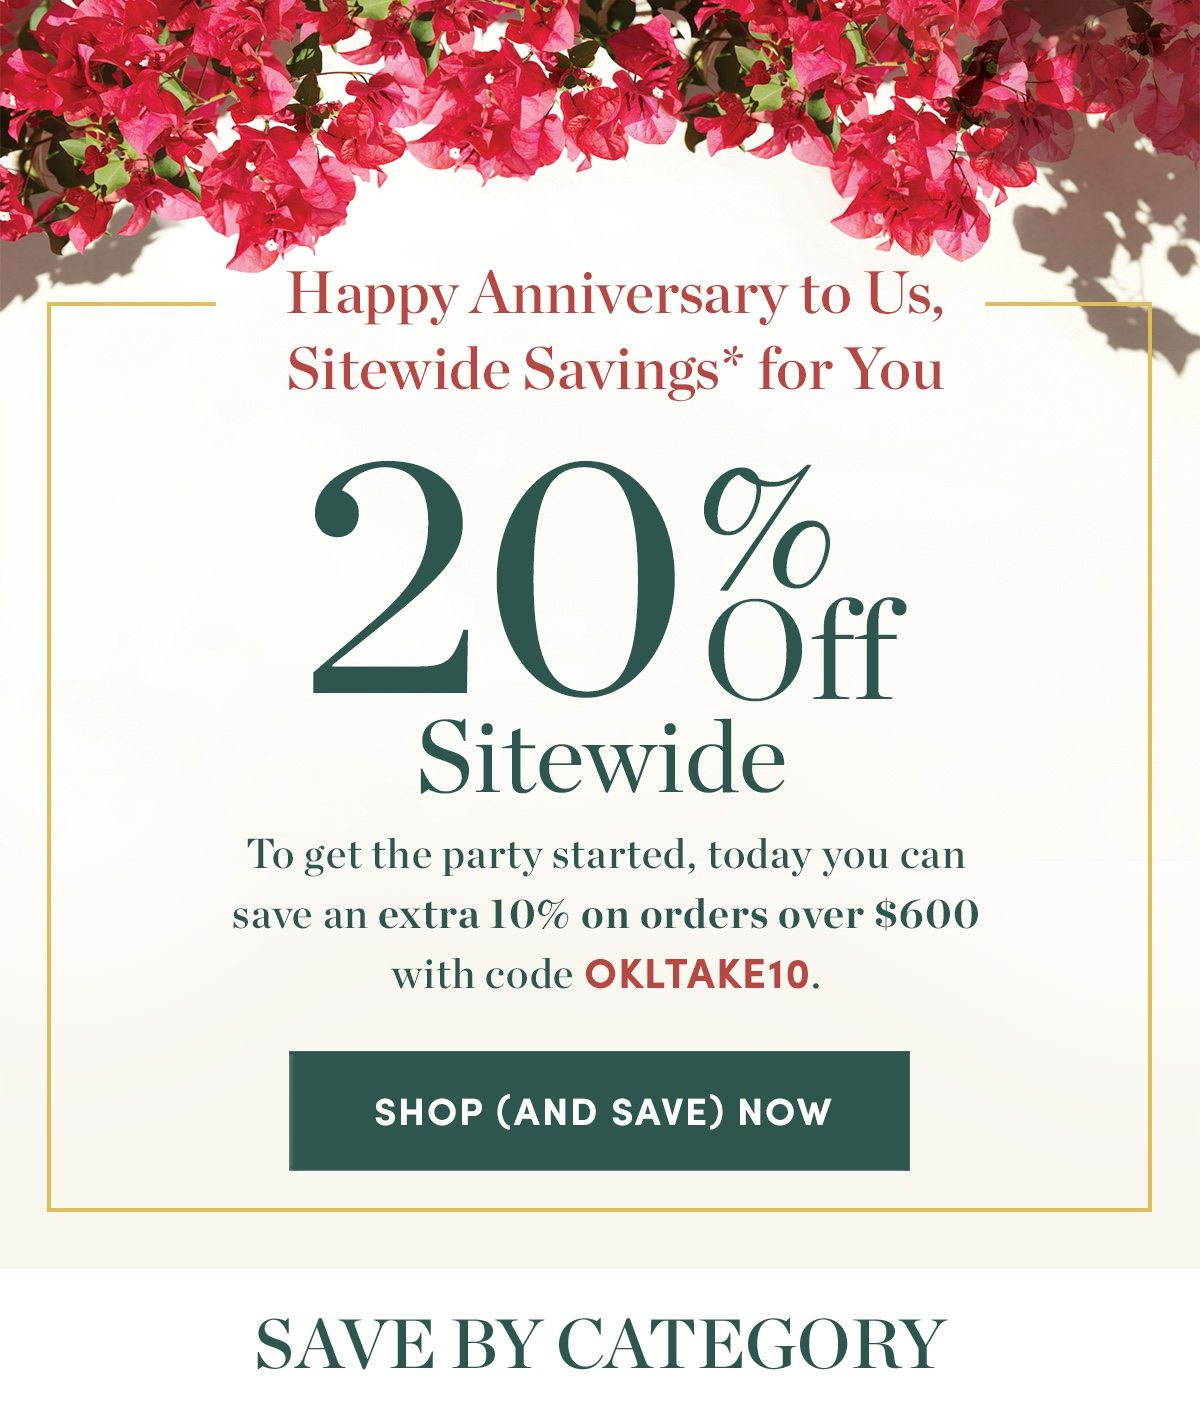 20 percent off site wide - To get the party started, today you can save an extra 10% on orders over $600 with code OKLTAKE10